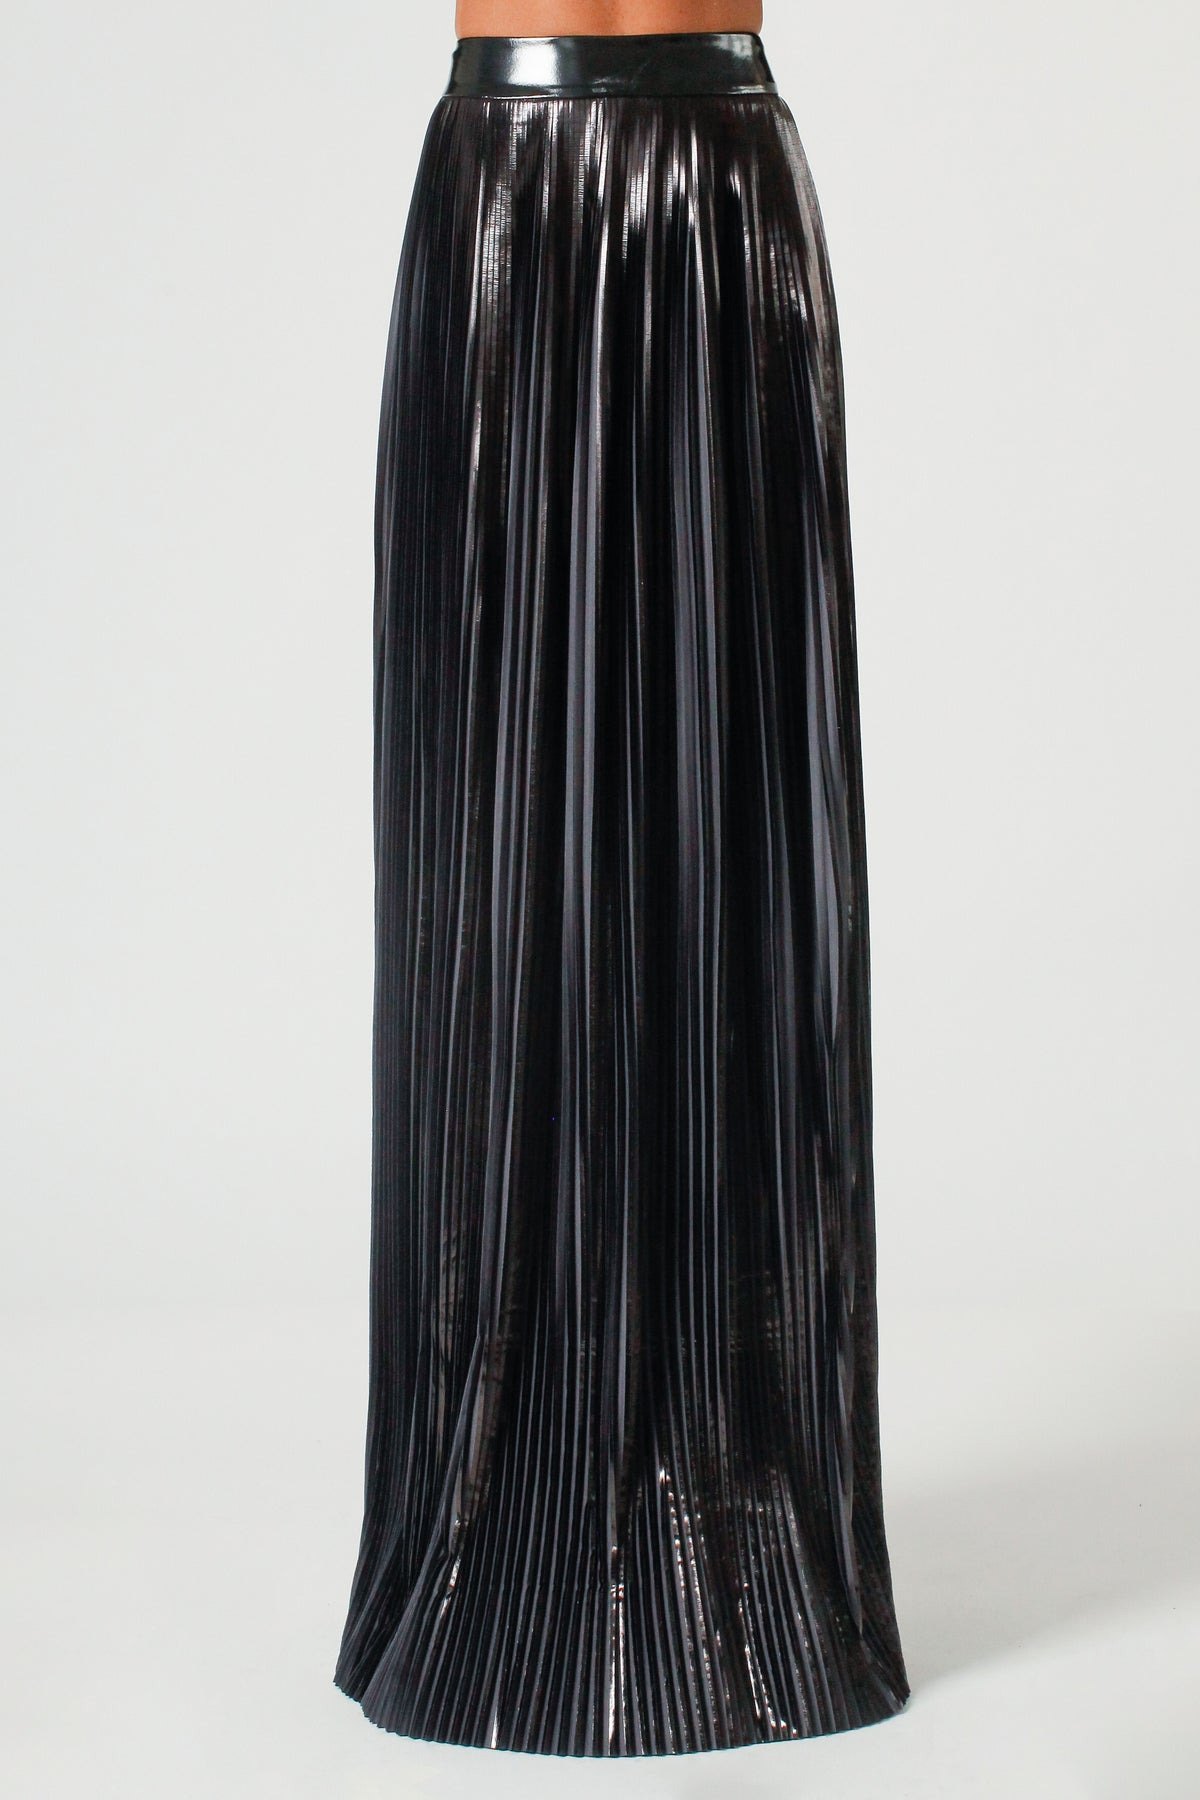 Black Pearl Pleated PVC Maxi Skirt